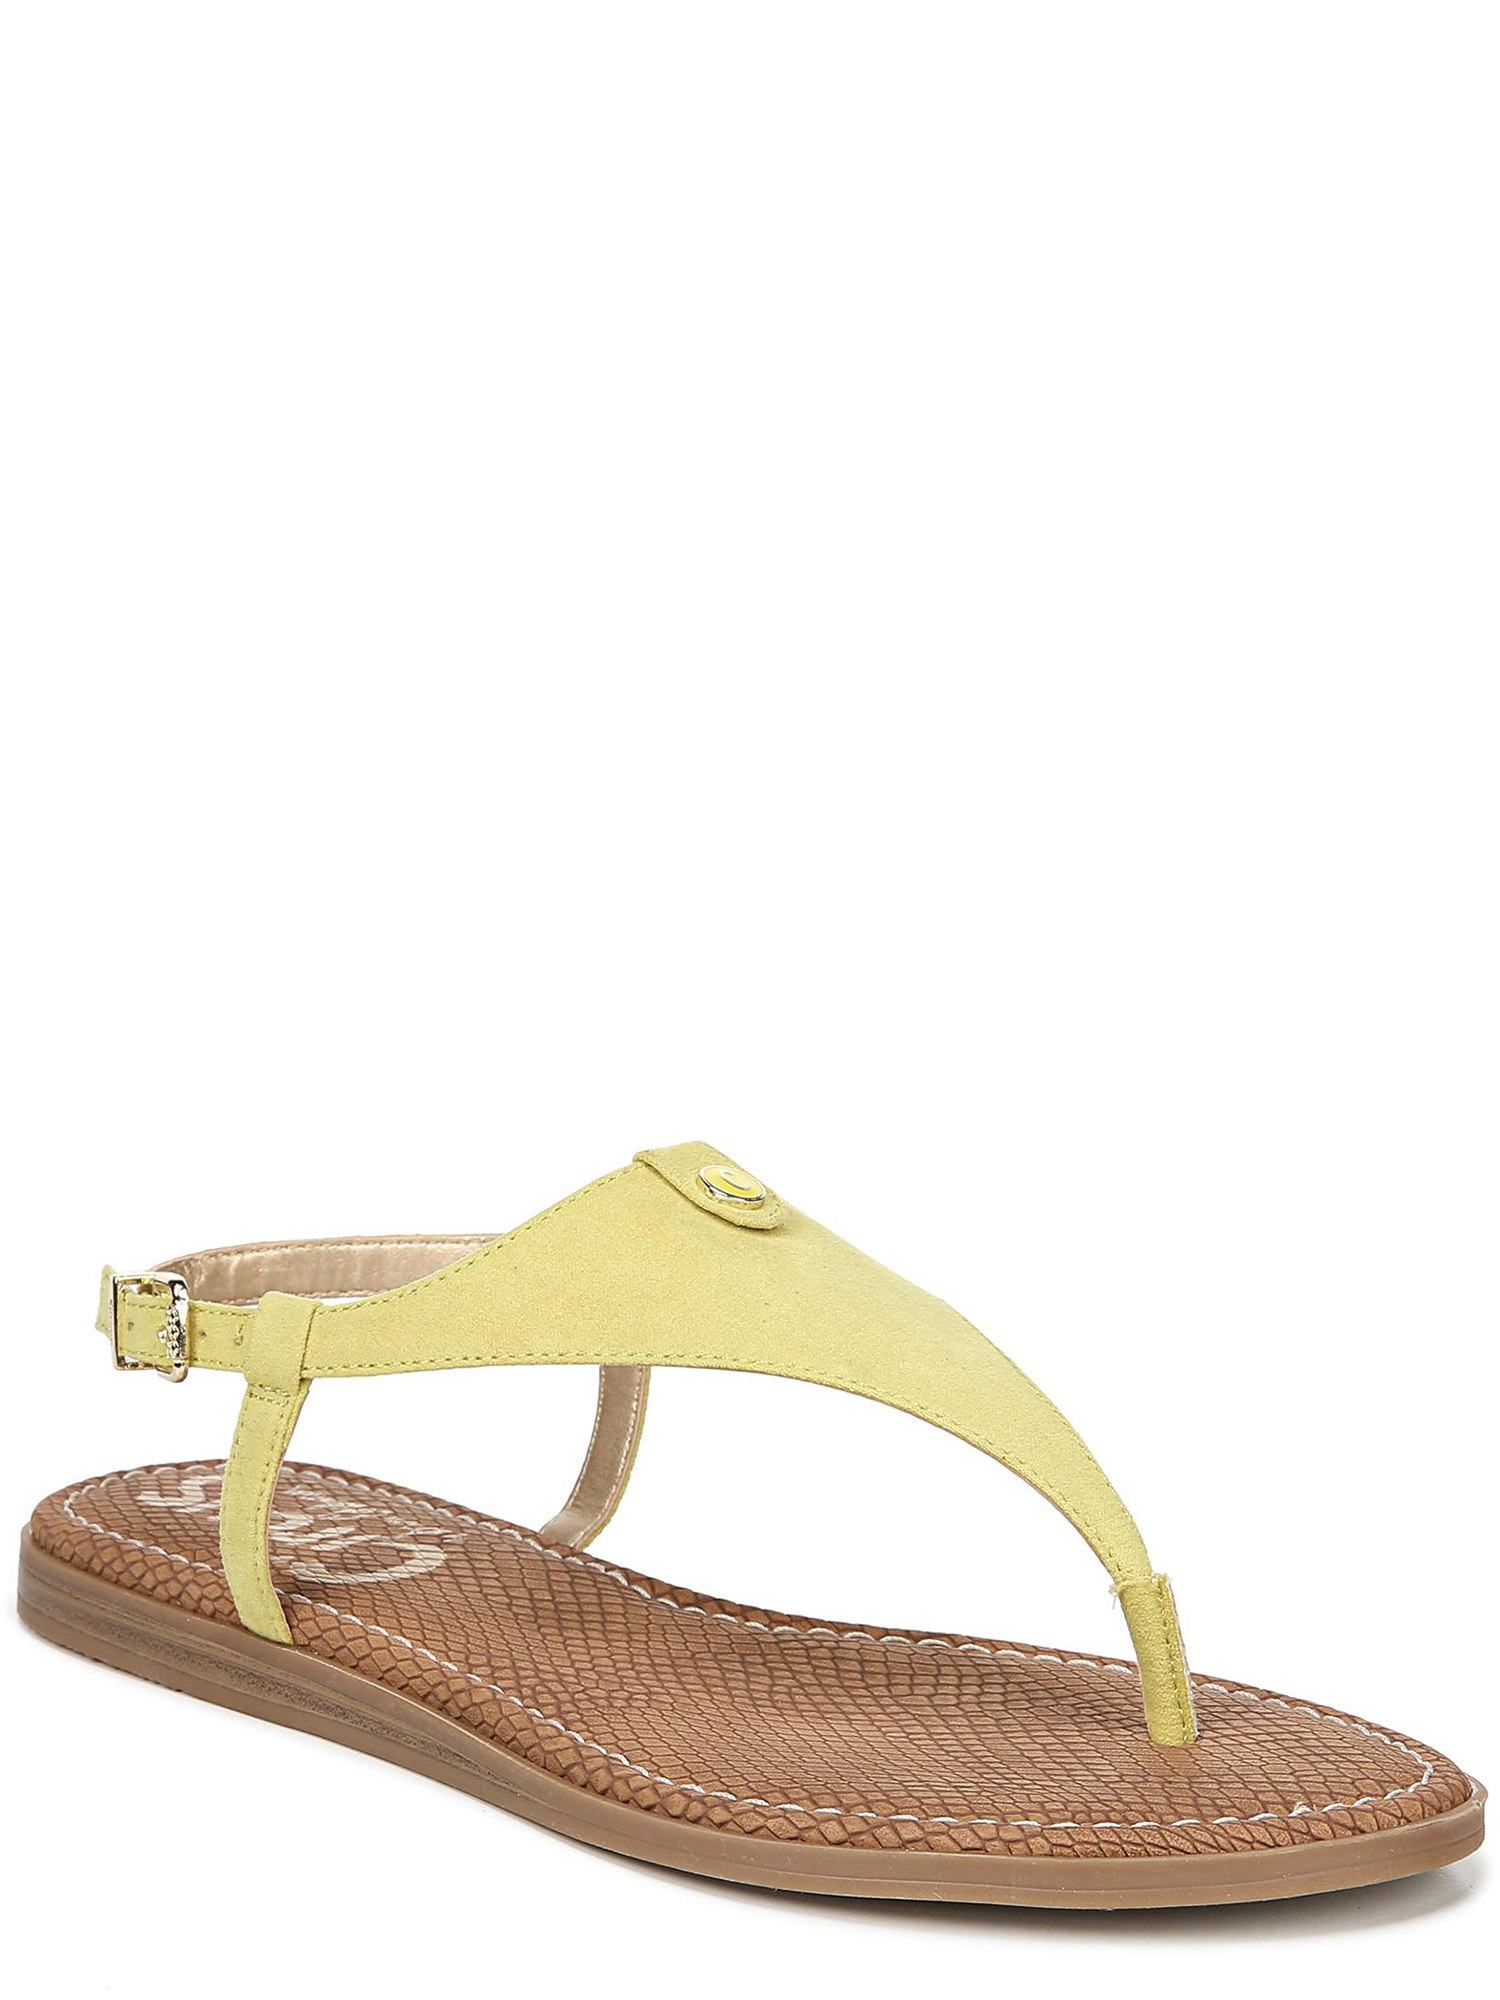 Women's Circus by Sam Edelman Carolina Sling-Back Sandals